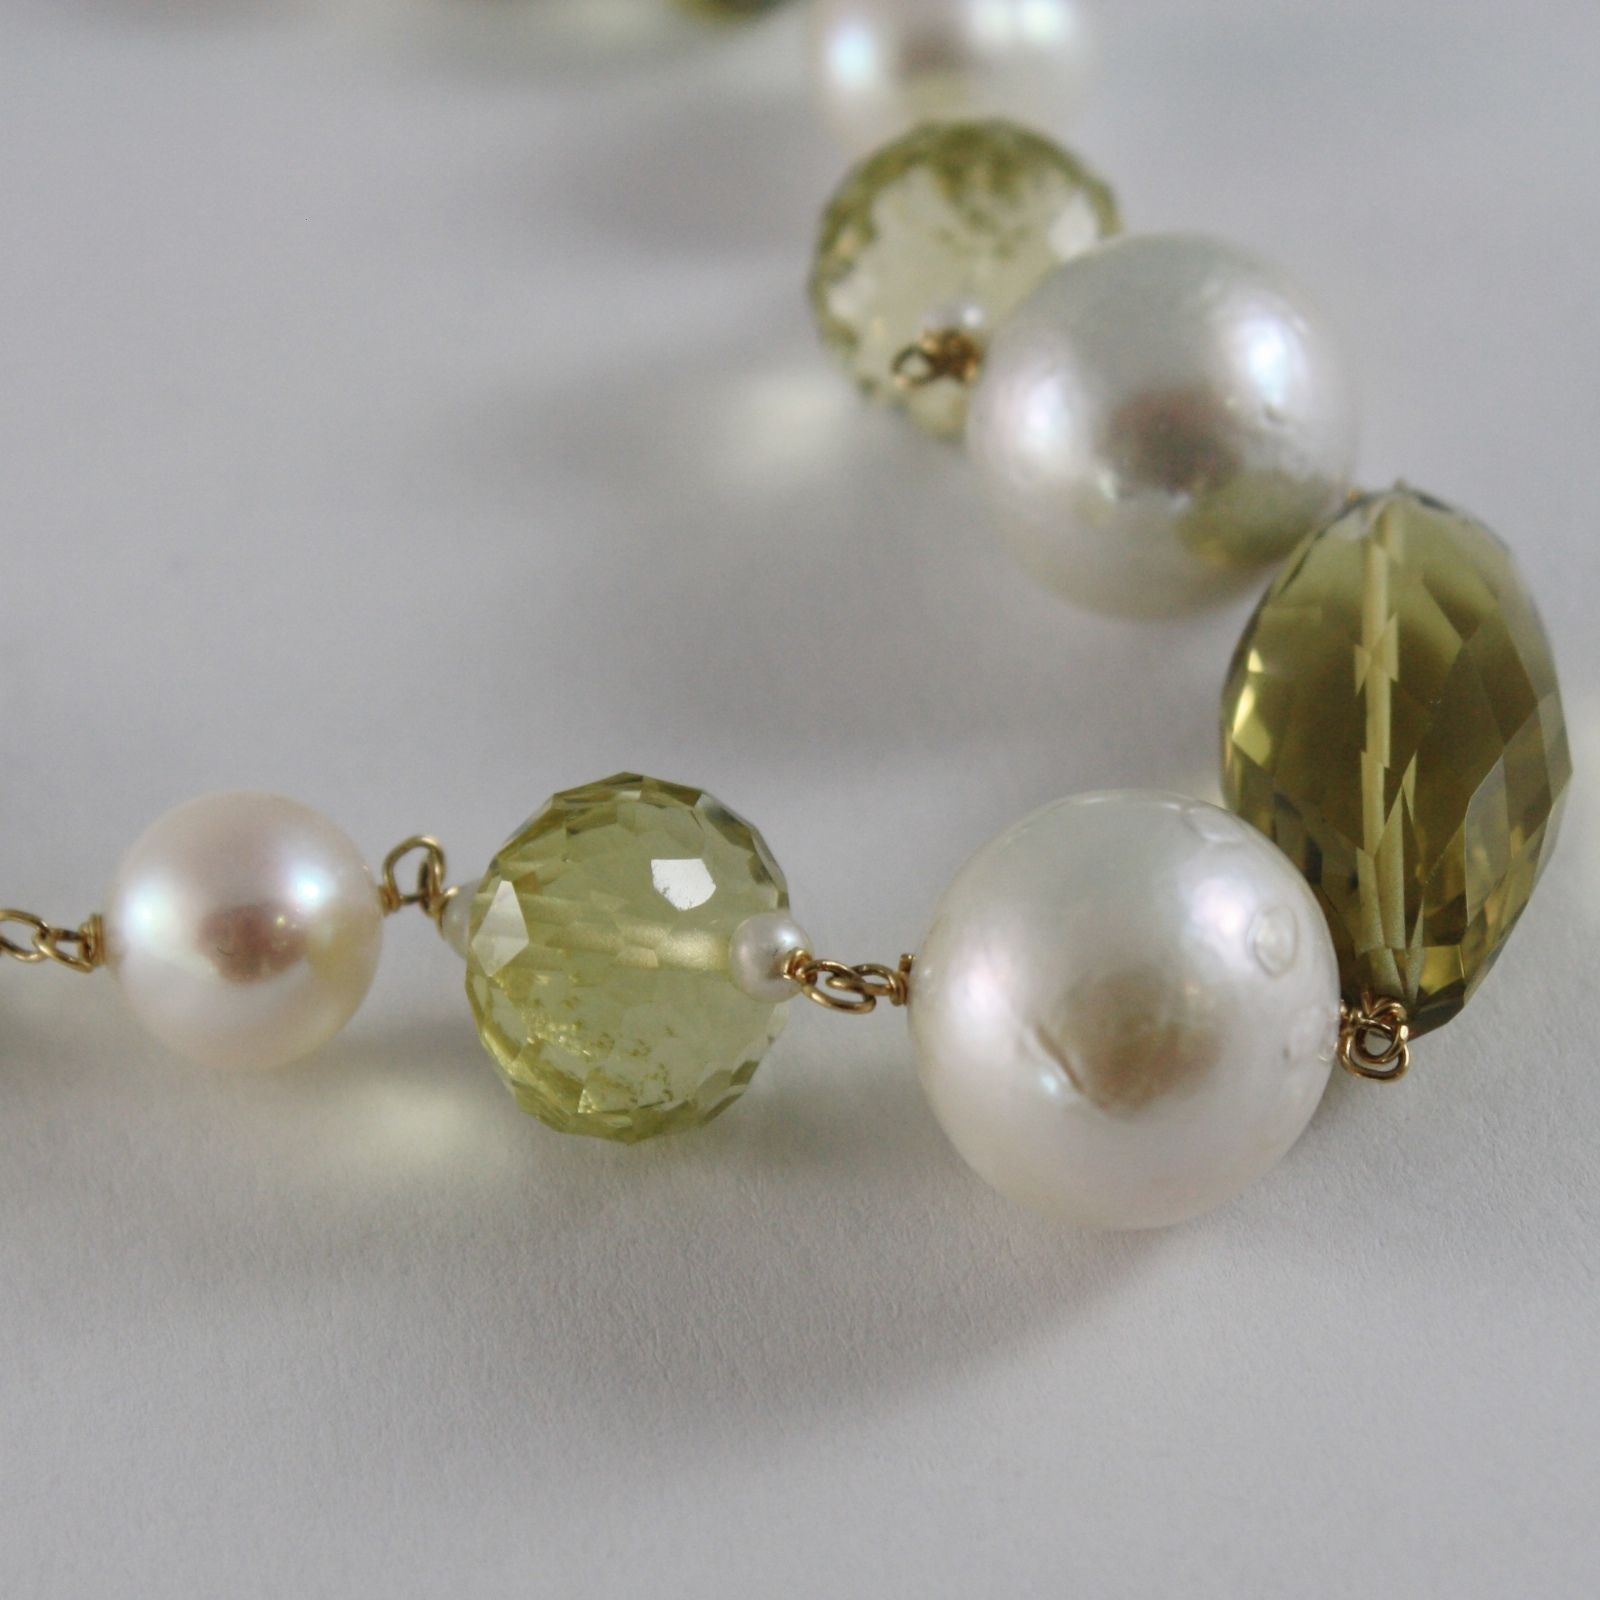 18K YELLOW GOLD BRACELET BIG WHITE PEARLS BROWN & LEMON QUARTZ MADE IN ITALY